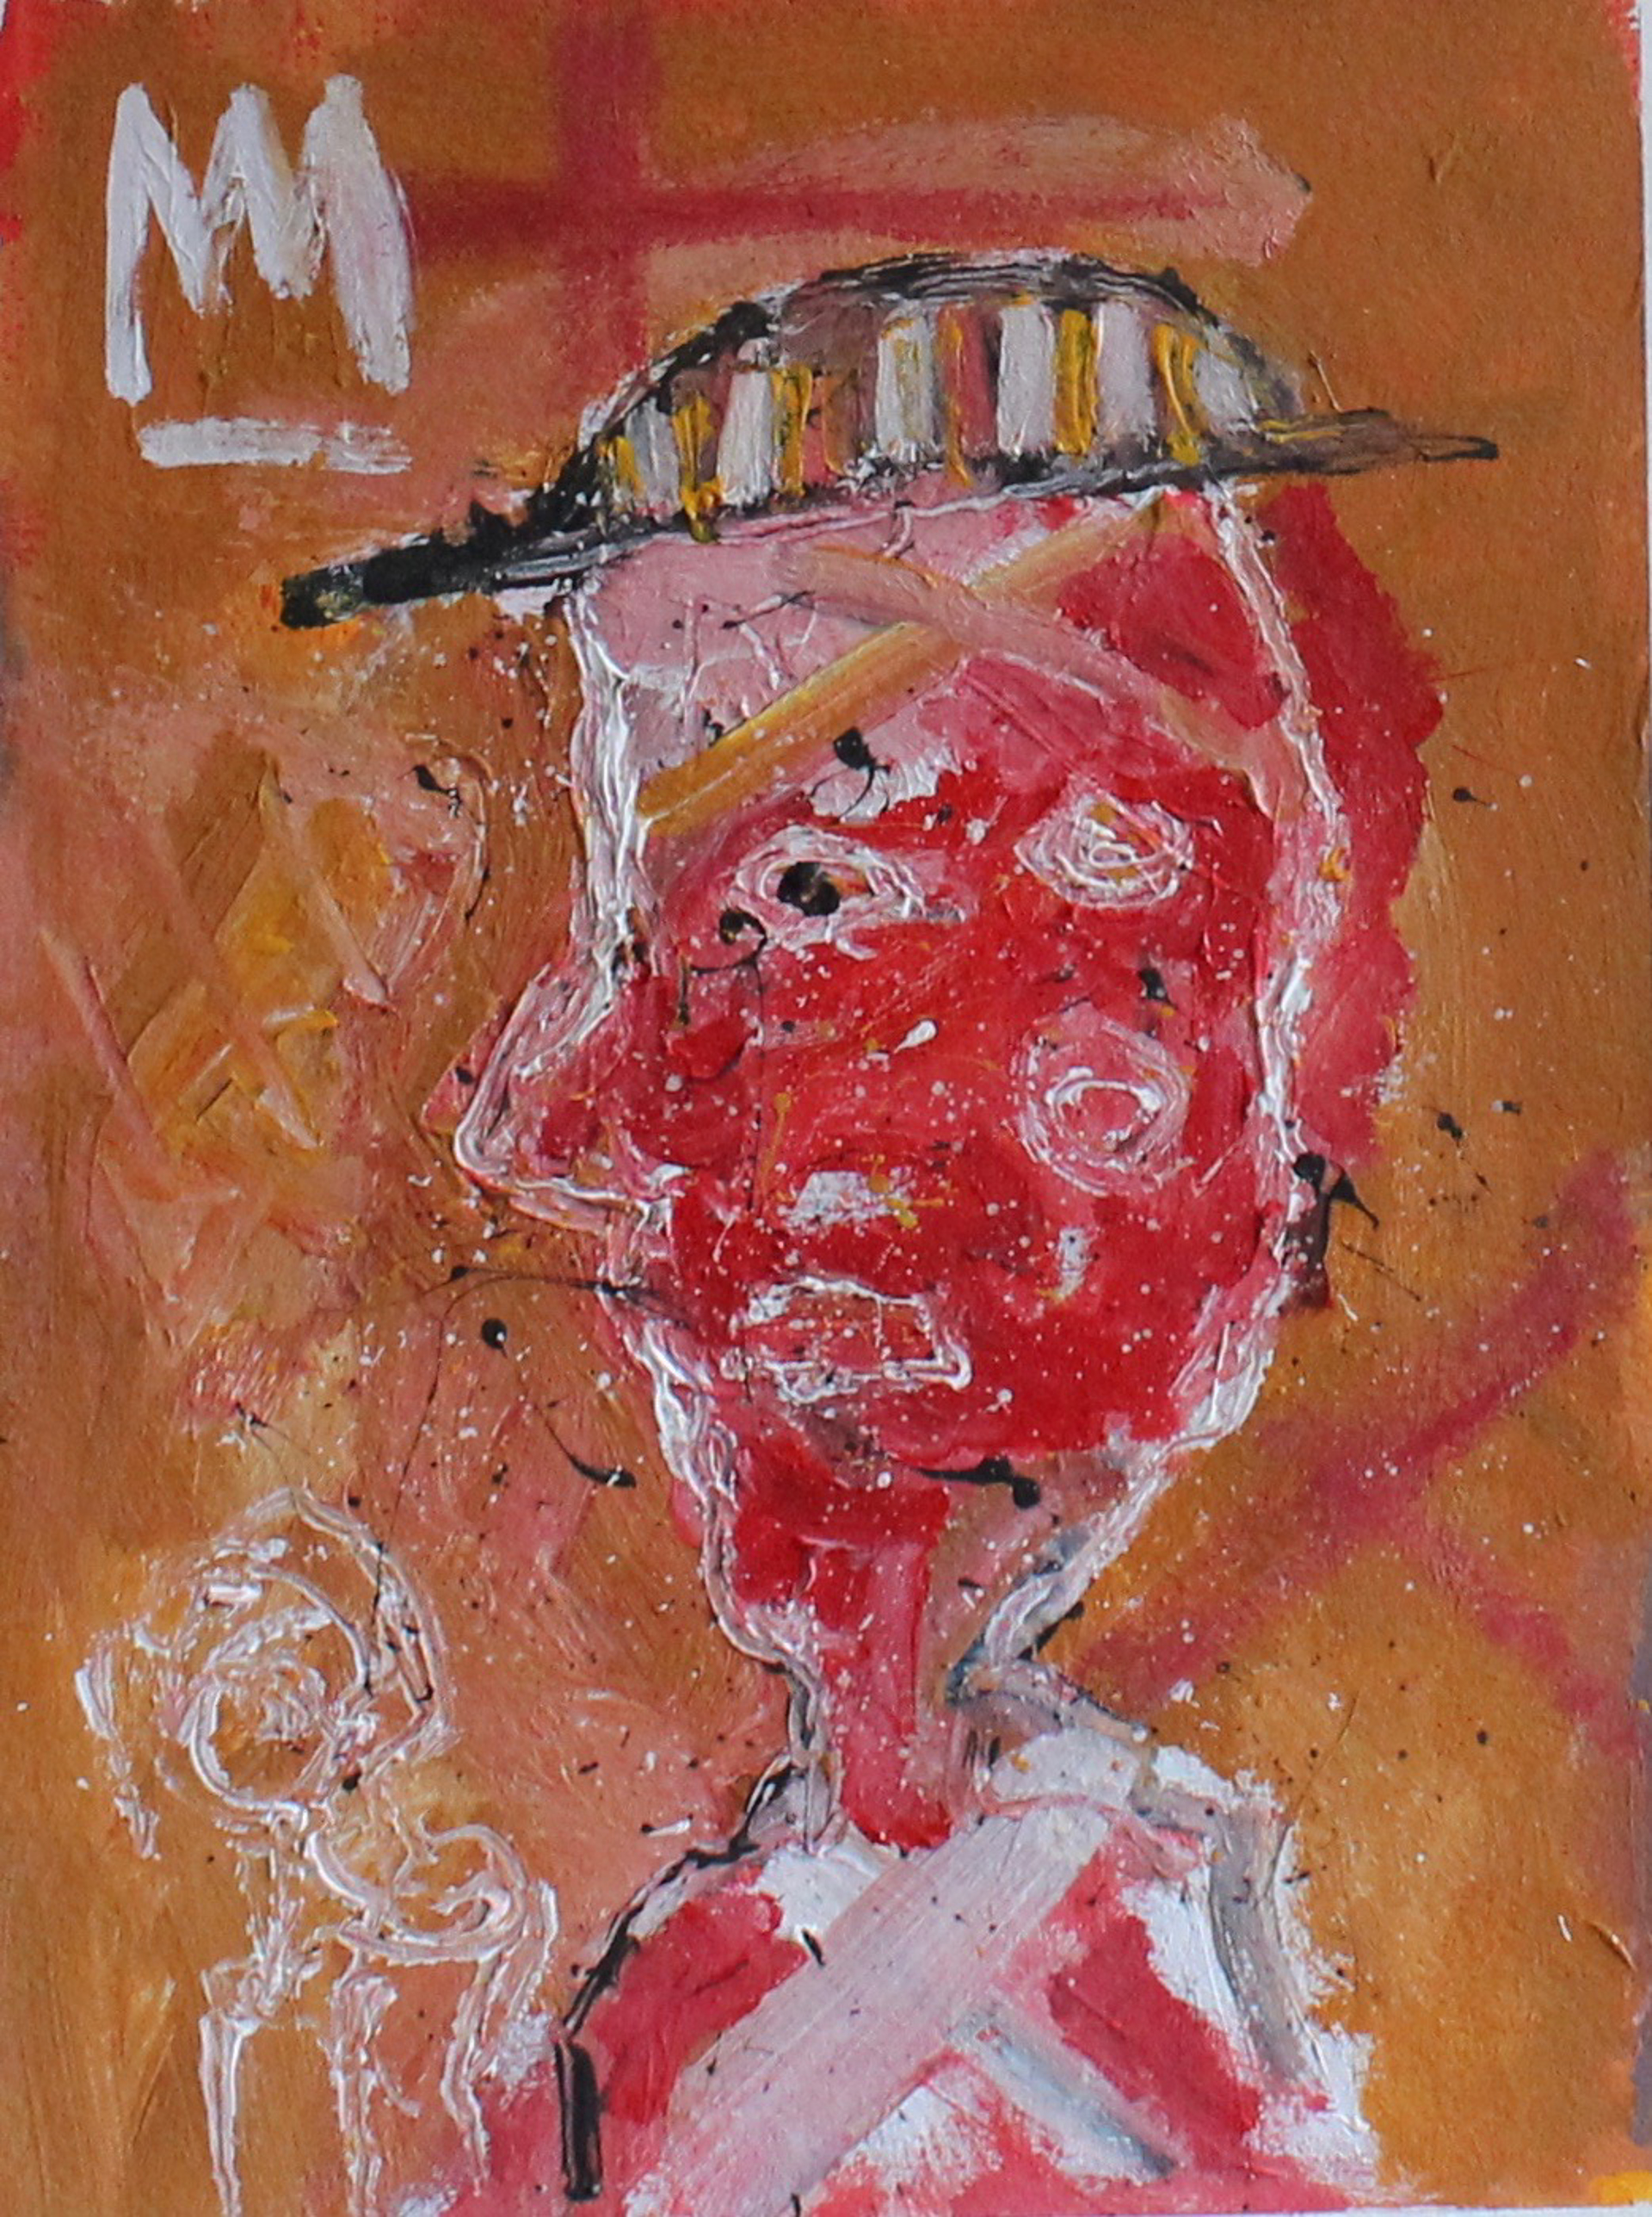 Red Faced Man by Michael Snodgrass